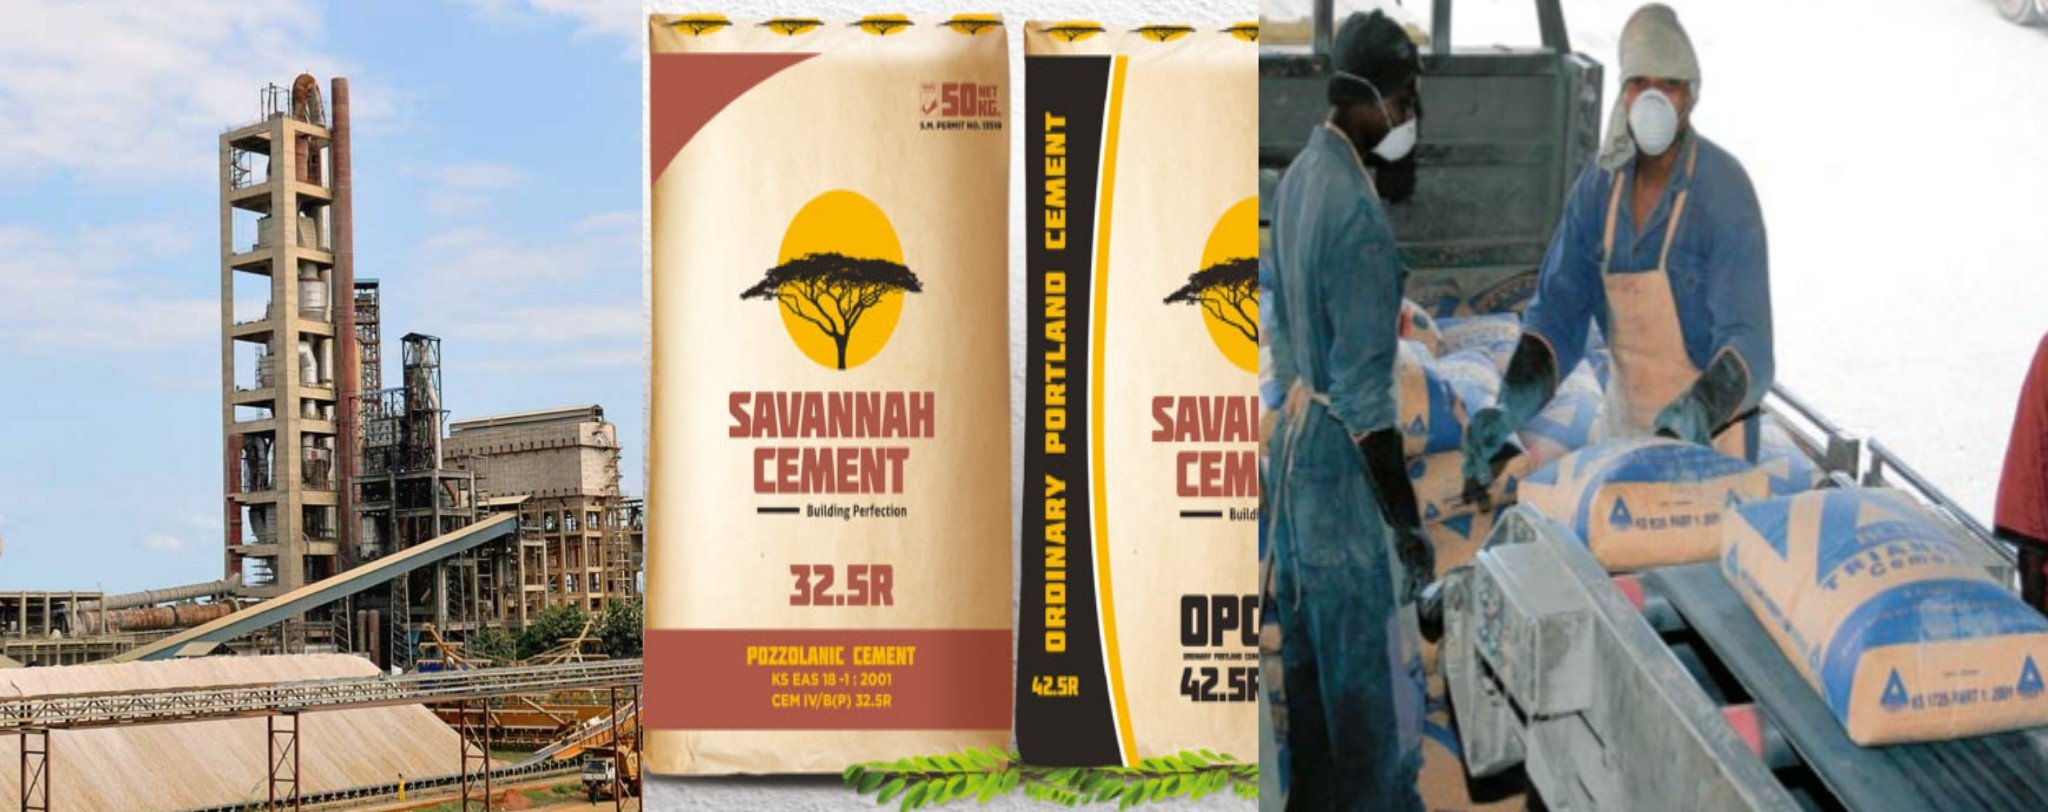 Associated Cement Companies : List of the most accredited cement companies in kenya